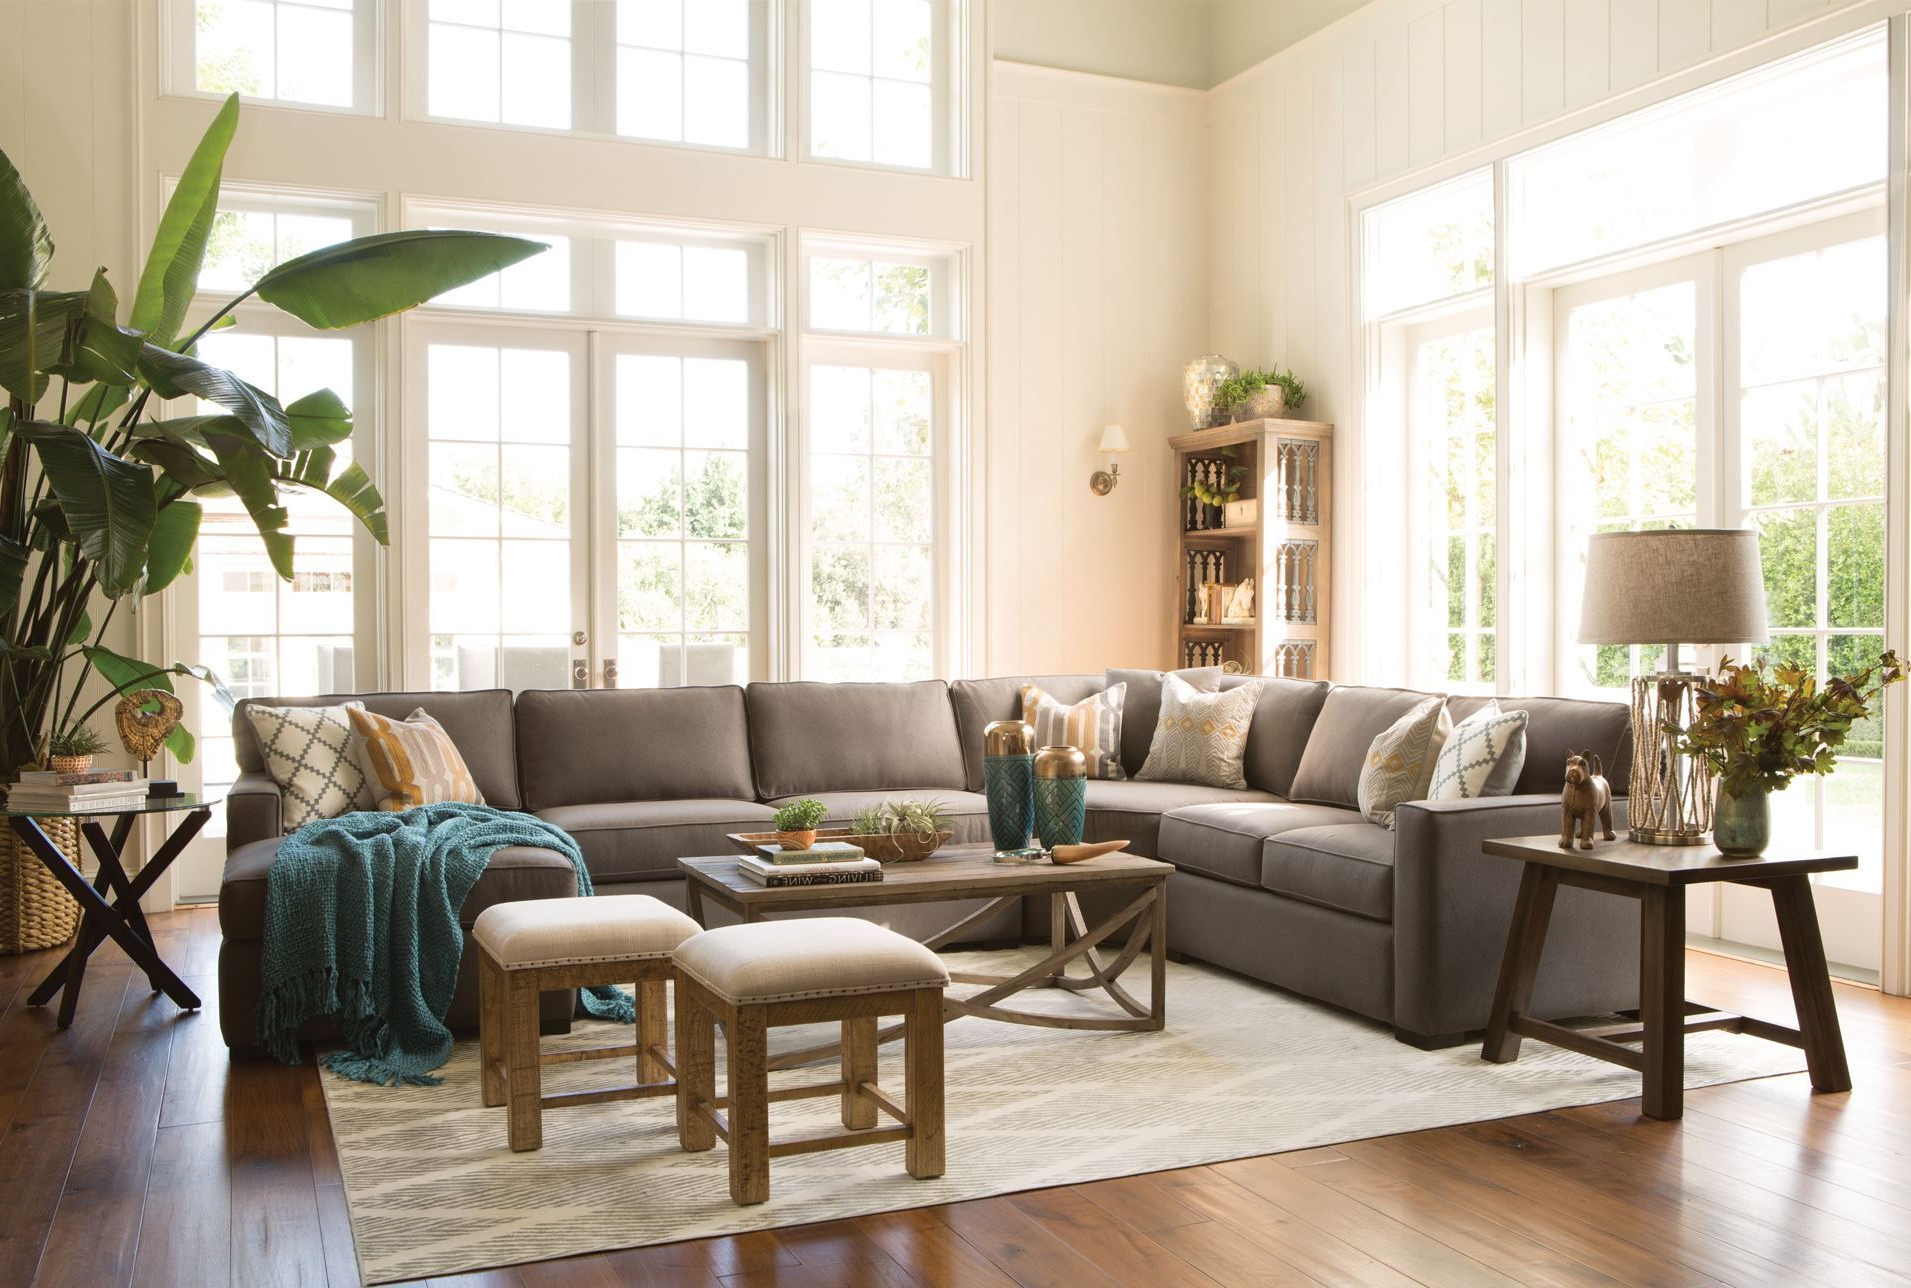 2019 Alder 4 Piece Sectionals Pertaining To Alder 4 Piece Sectional In  (View 1 of 20)